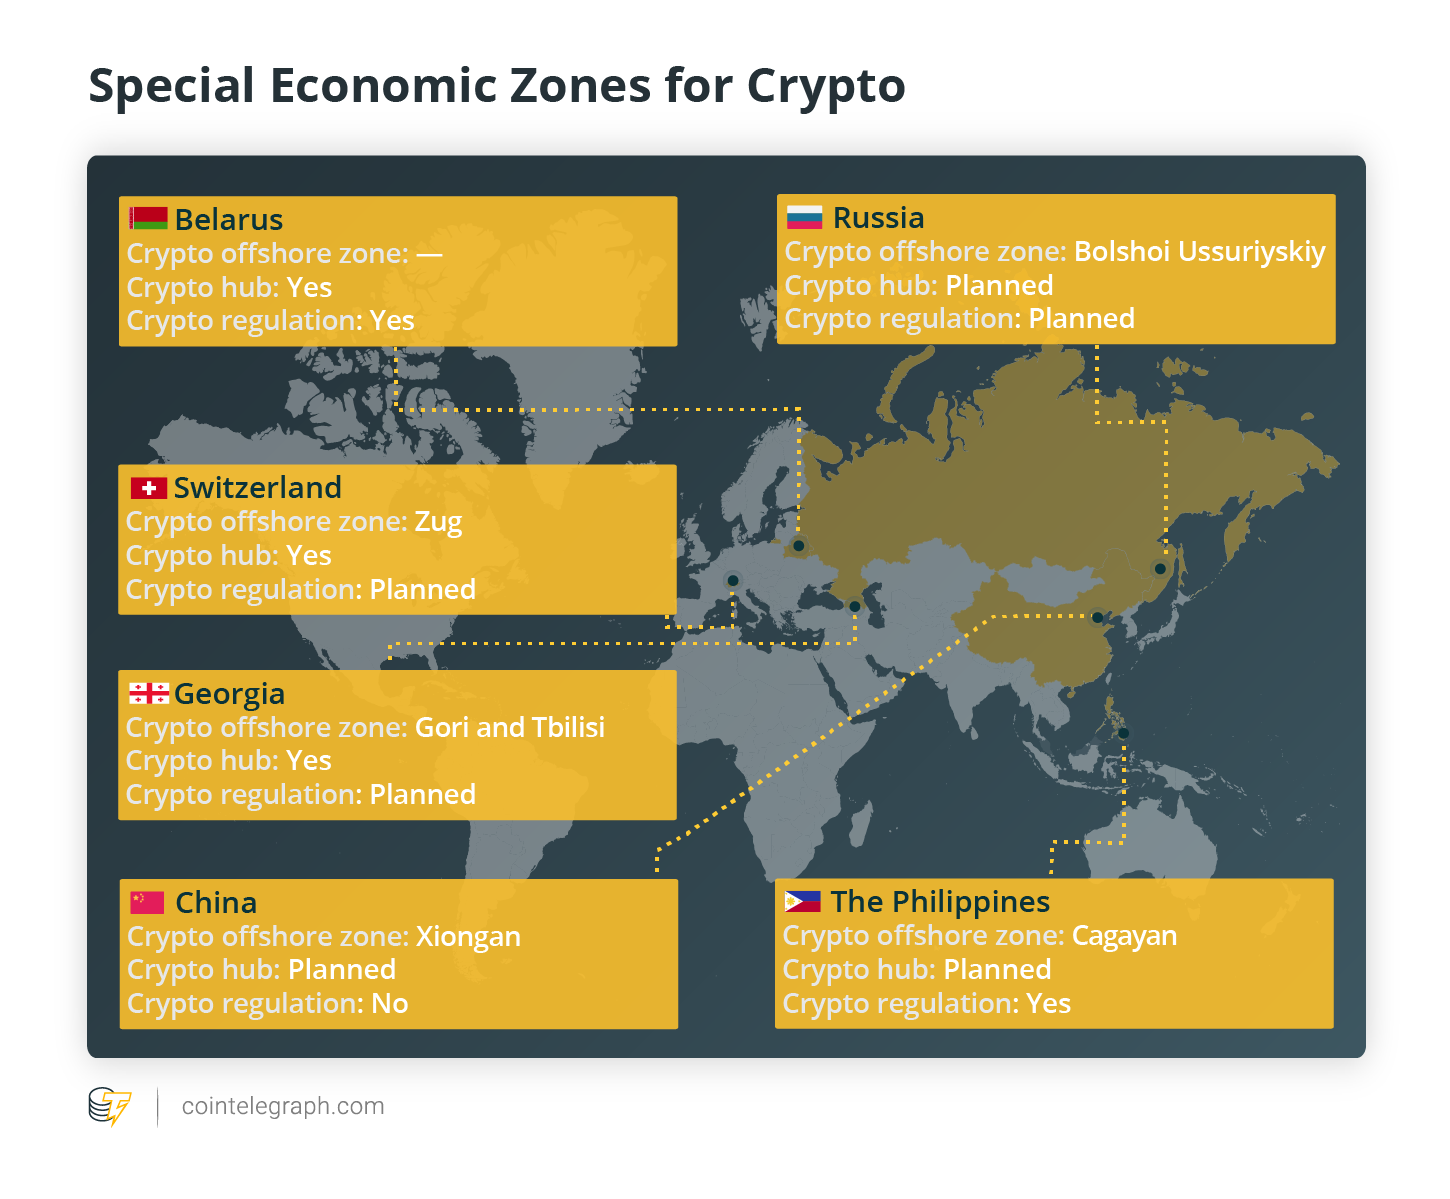 Special Economic Zones for Crypto